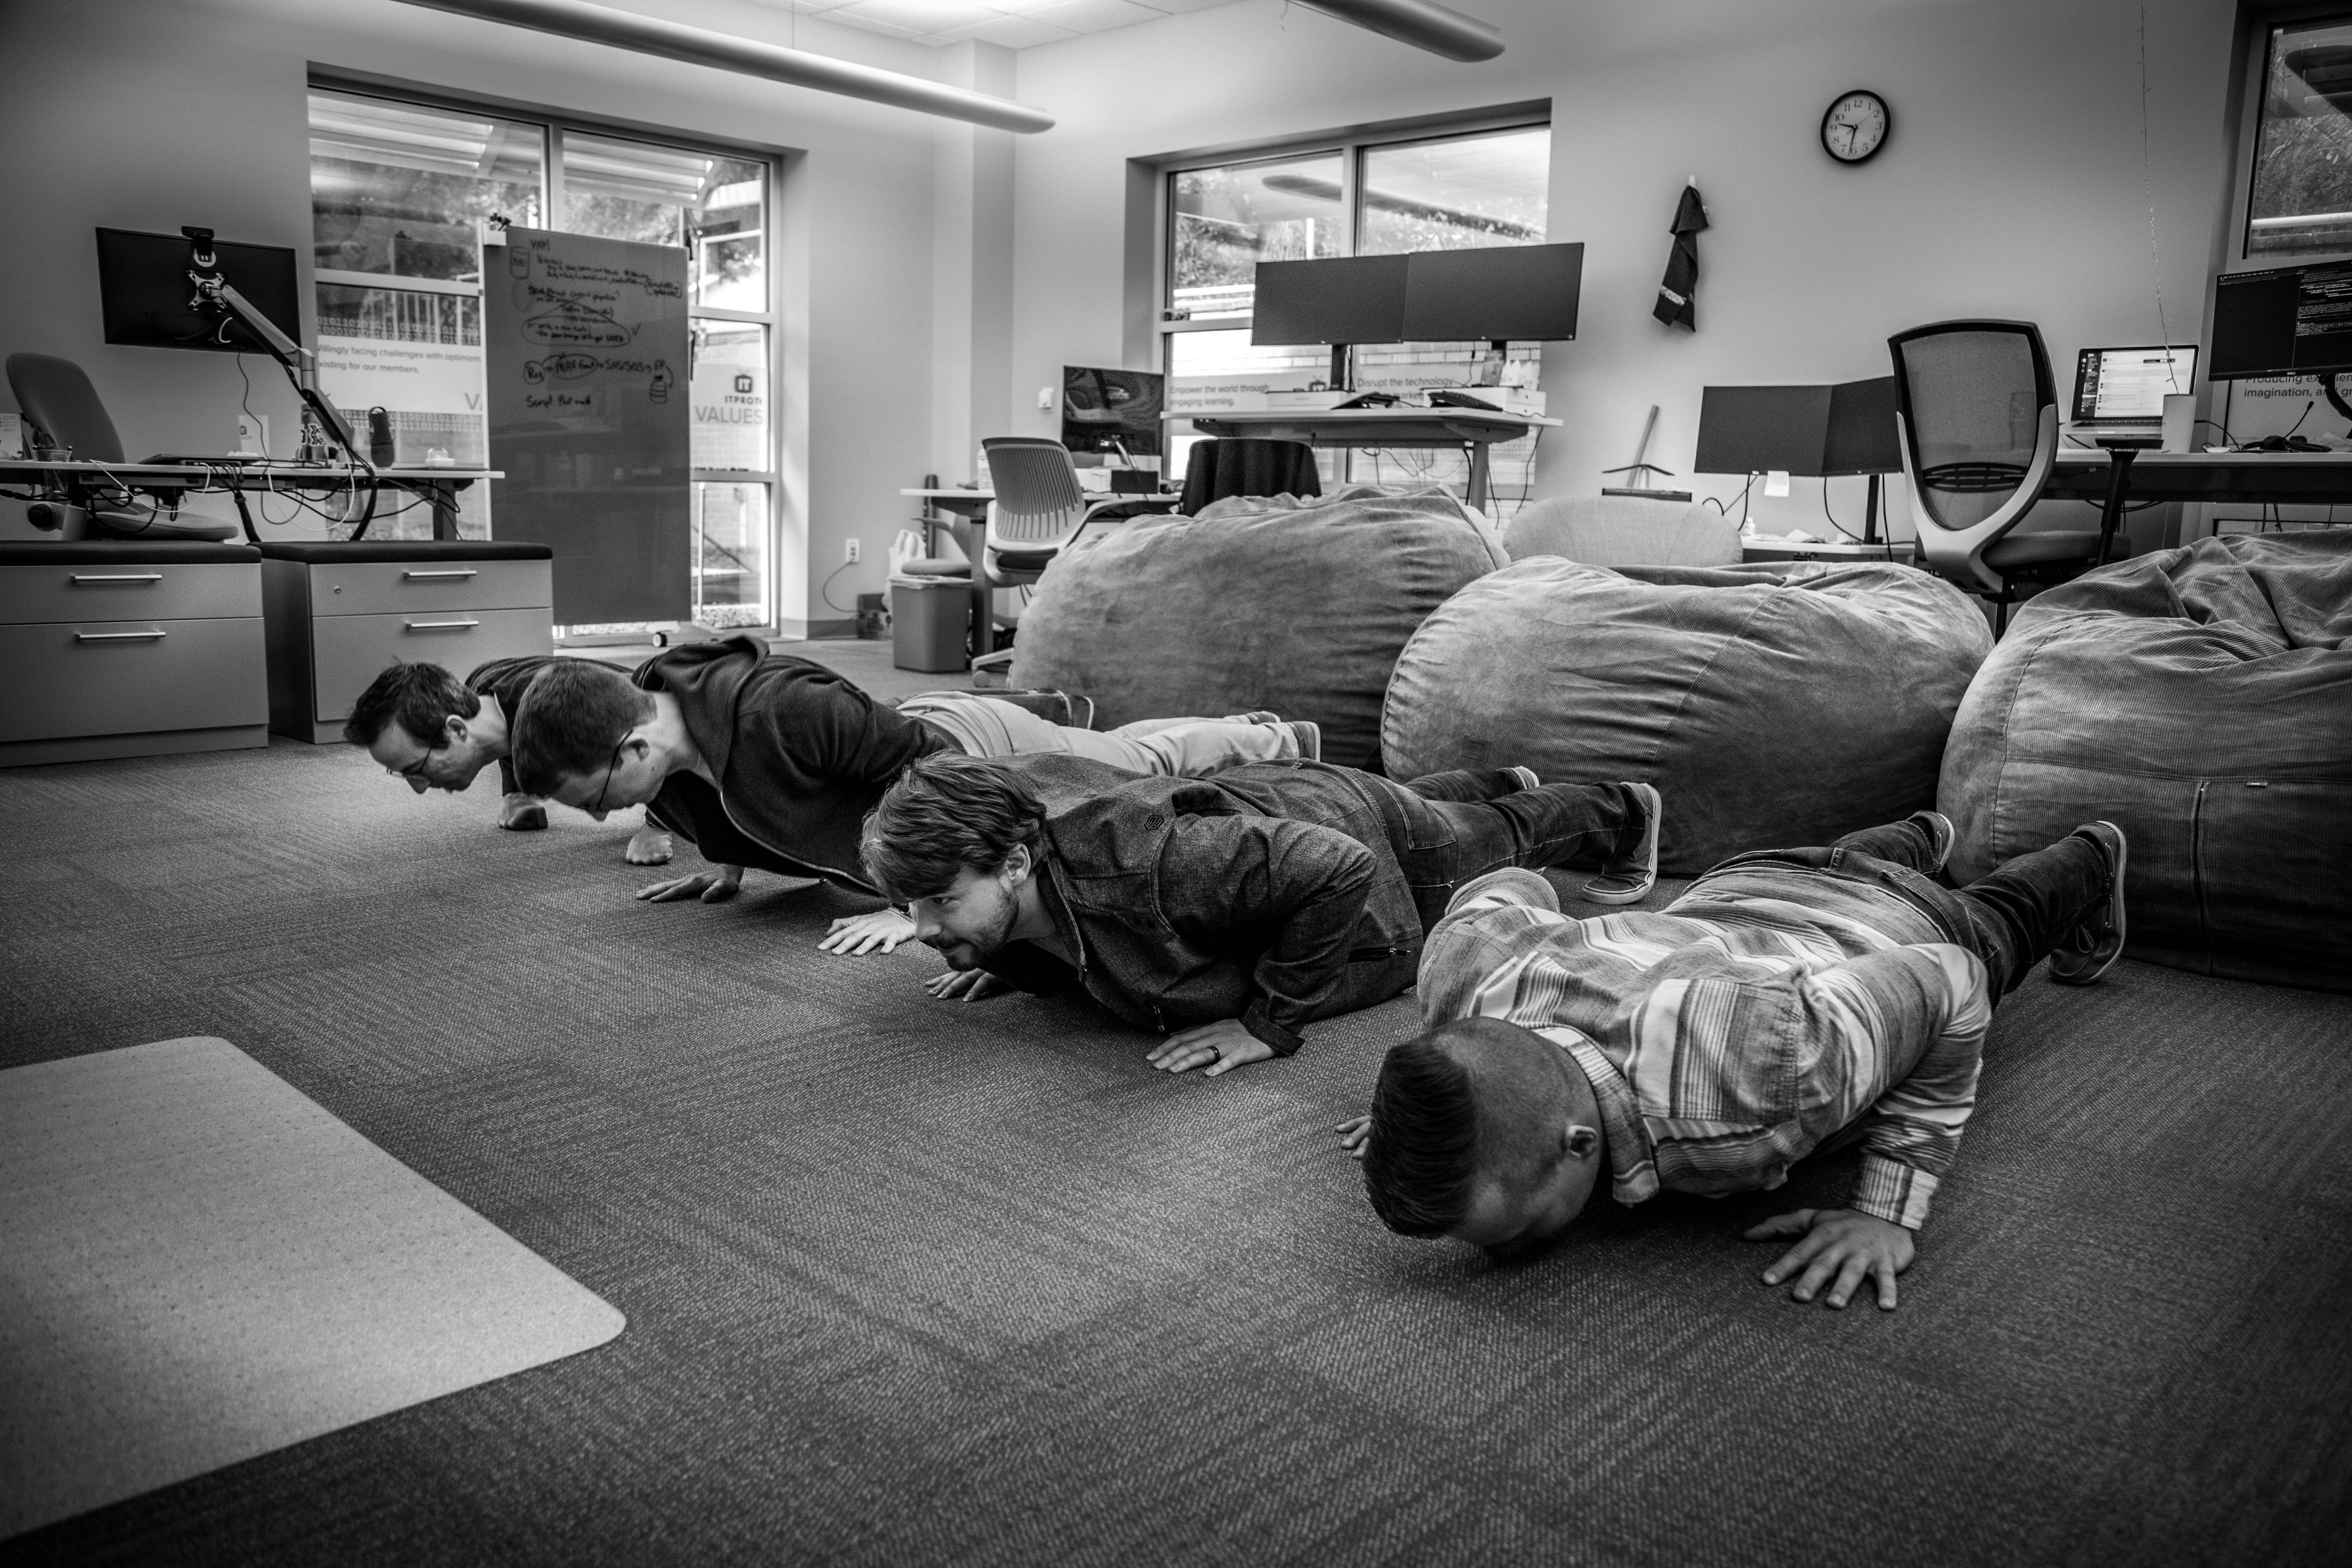 A photo of ITProTV Team doing push ups